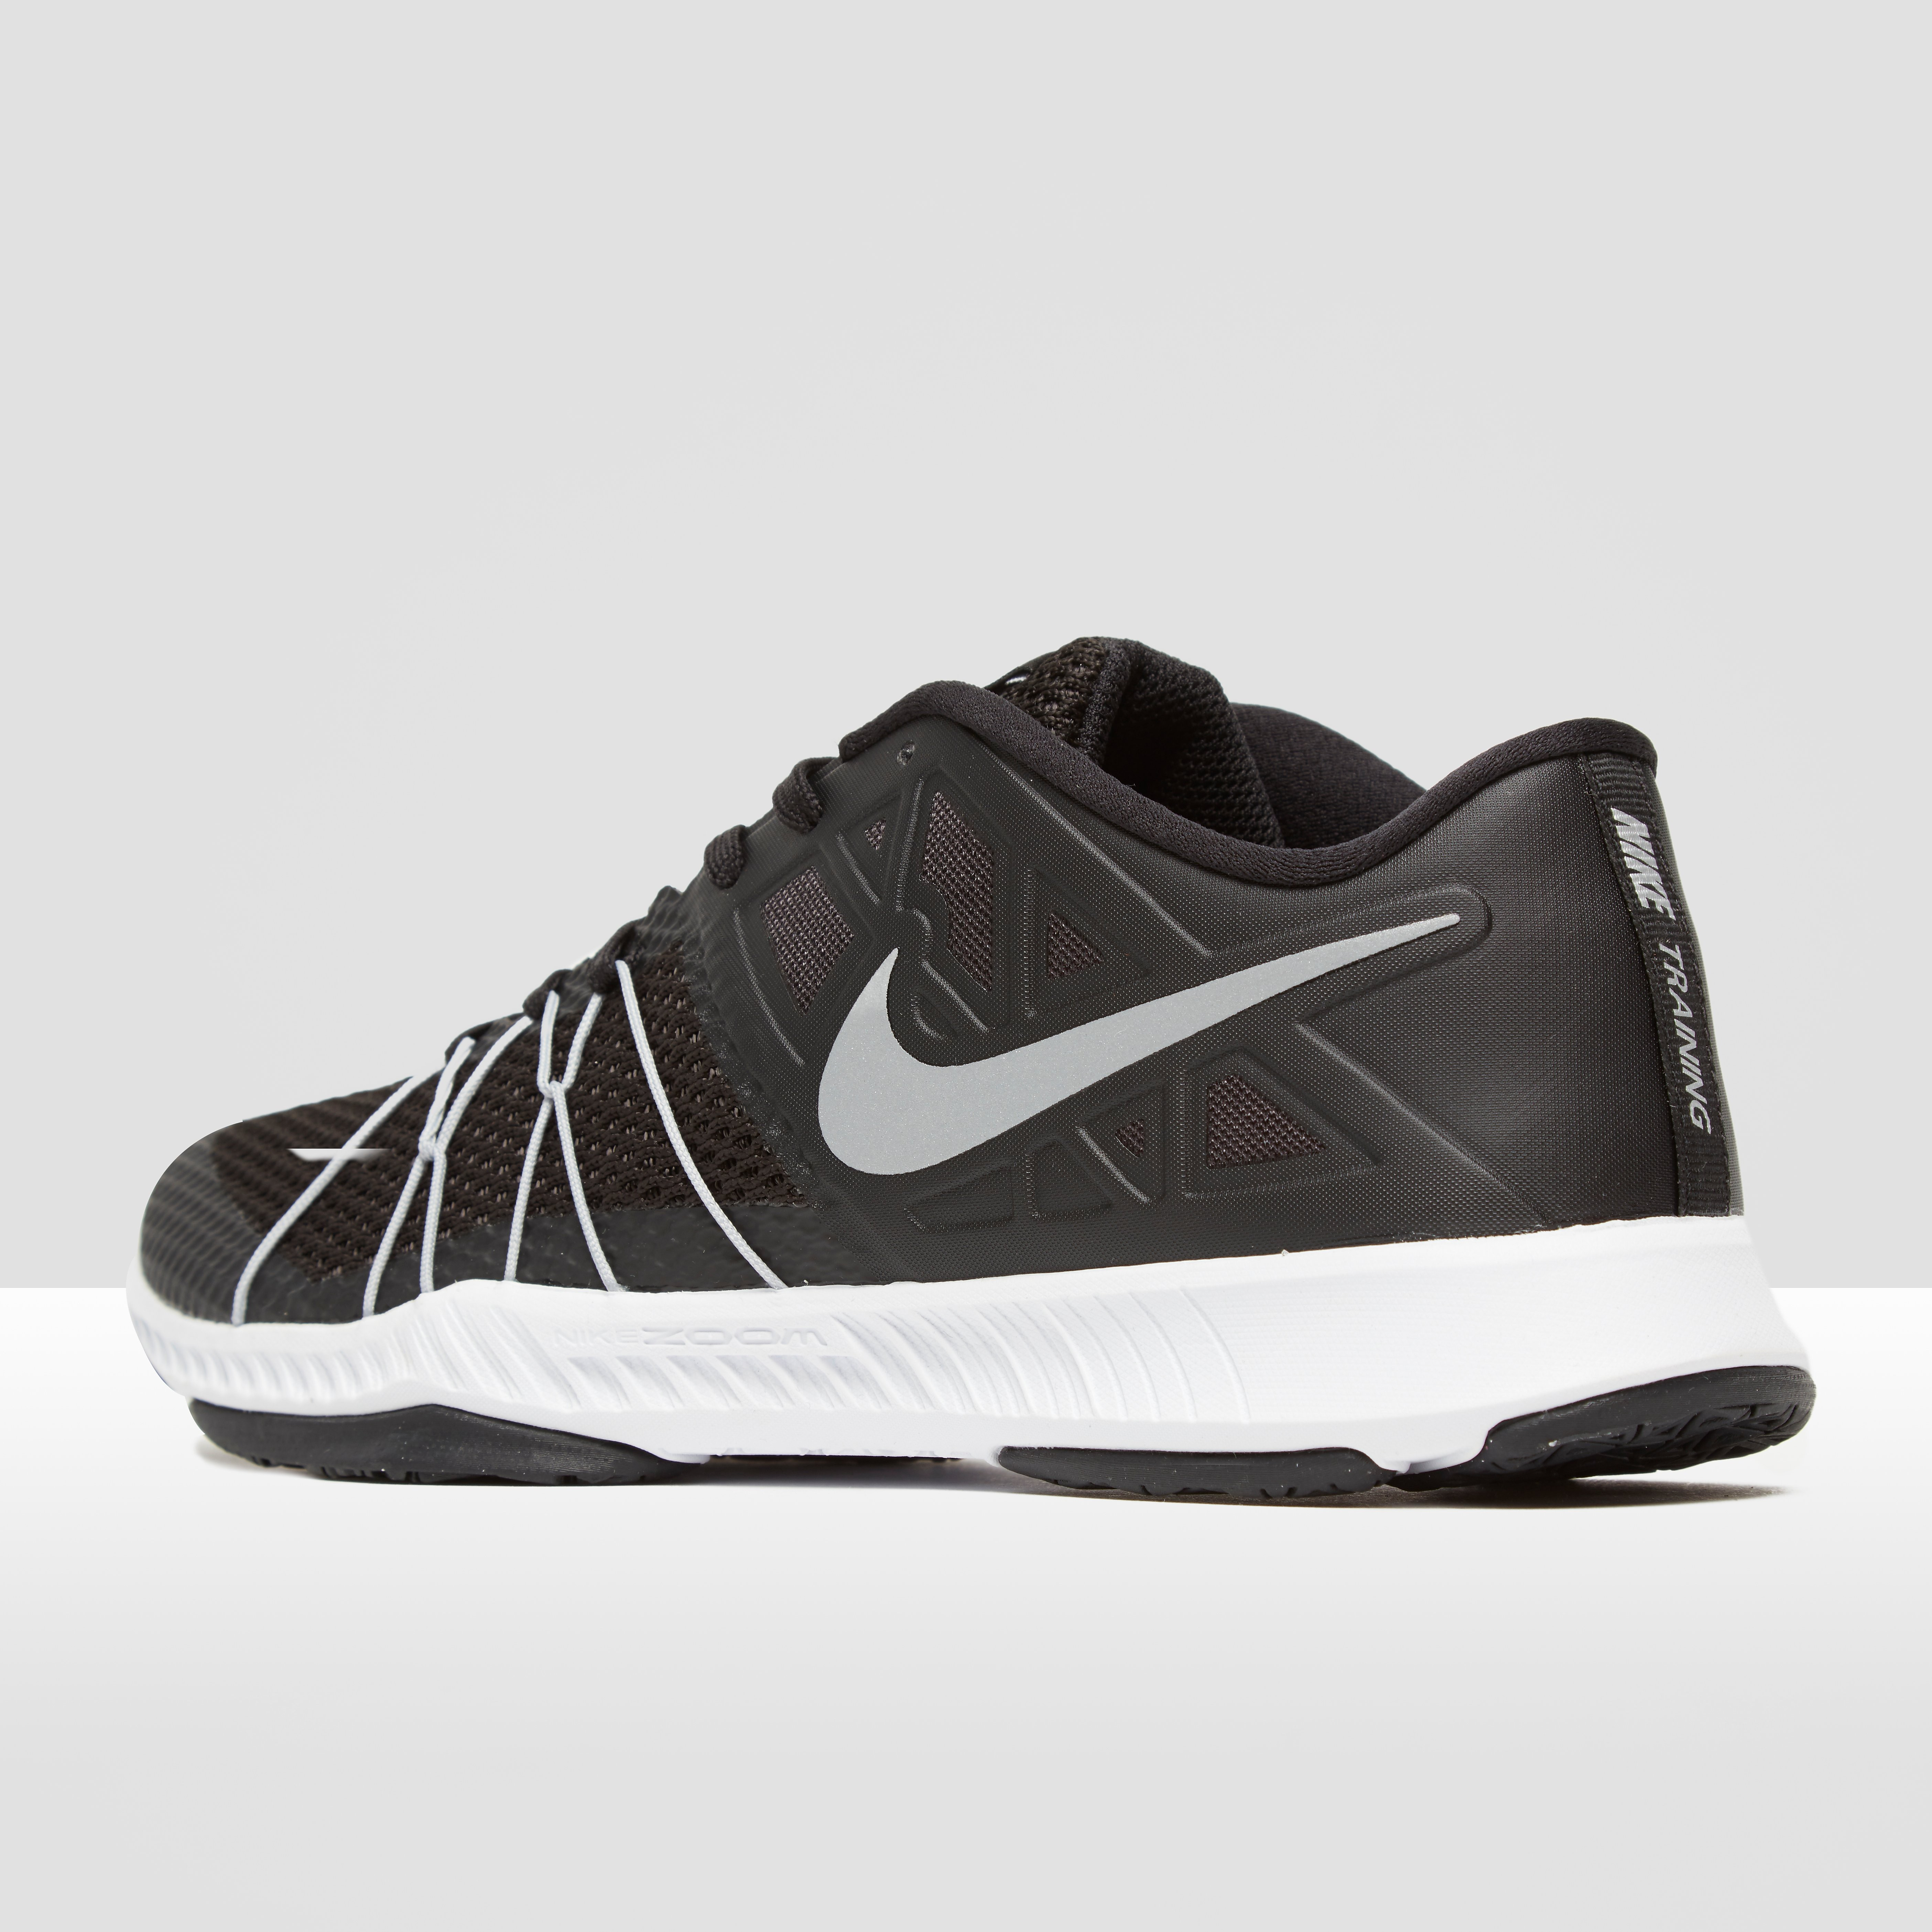 Nike Zoom Incredibly Fast Men's Training shoes